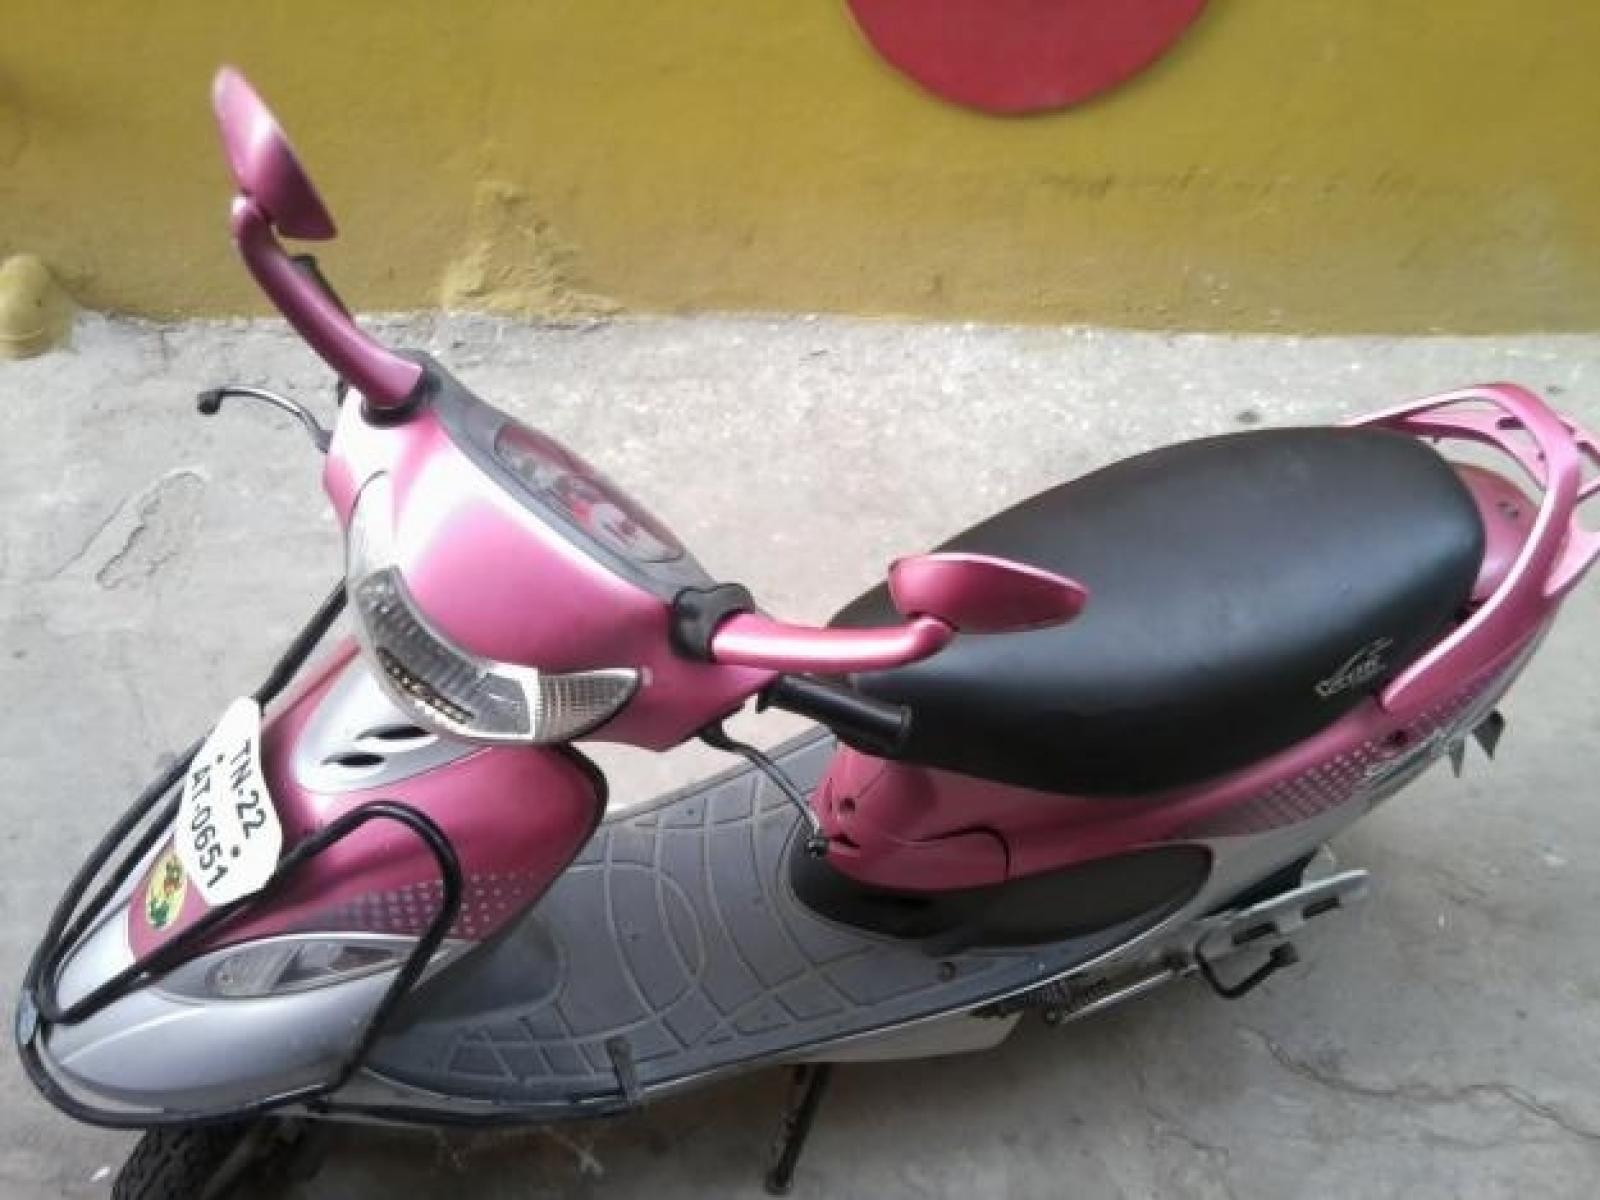 Swell Tvs Scooty Pep Plus Weight Compare Tvs Scooty Pep Plus Vs Alphanode Cool Chair Designs And Ideas Alphanodeonline